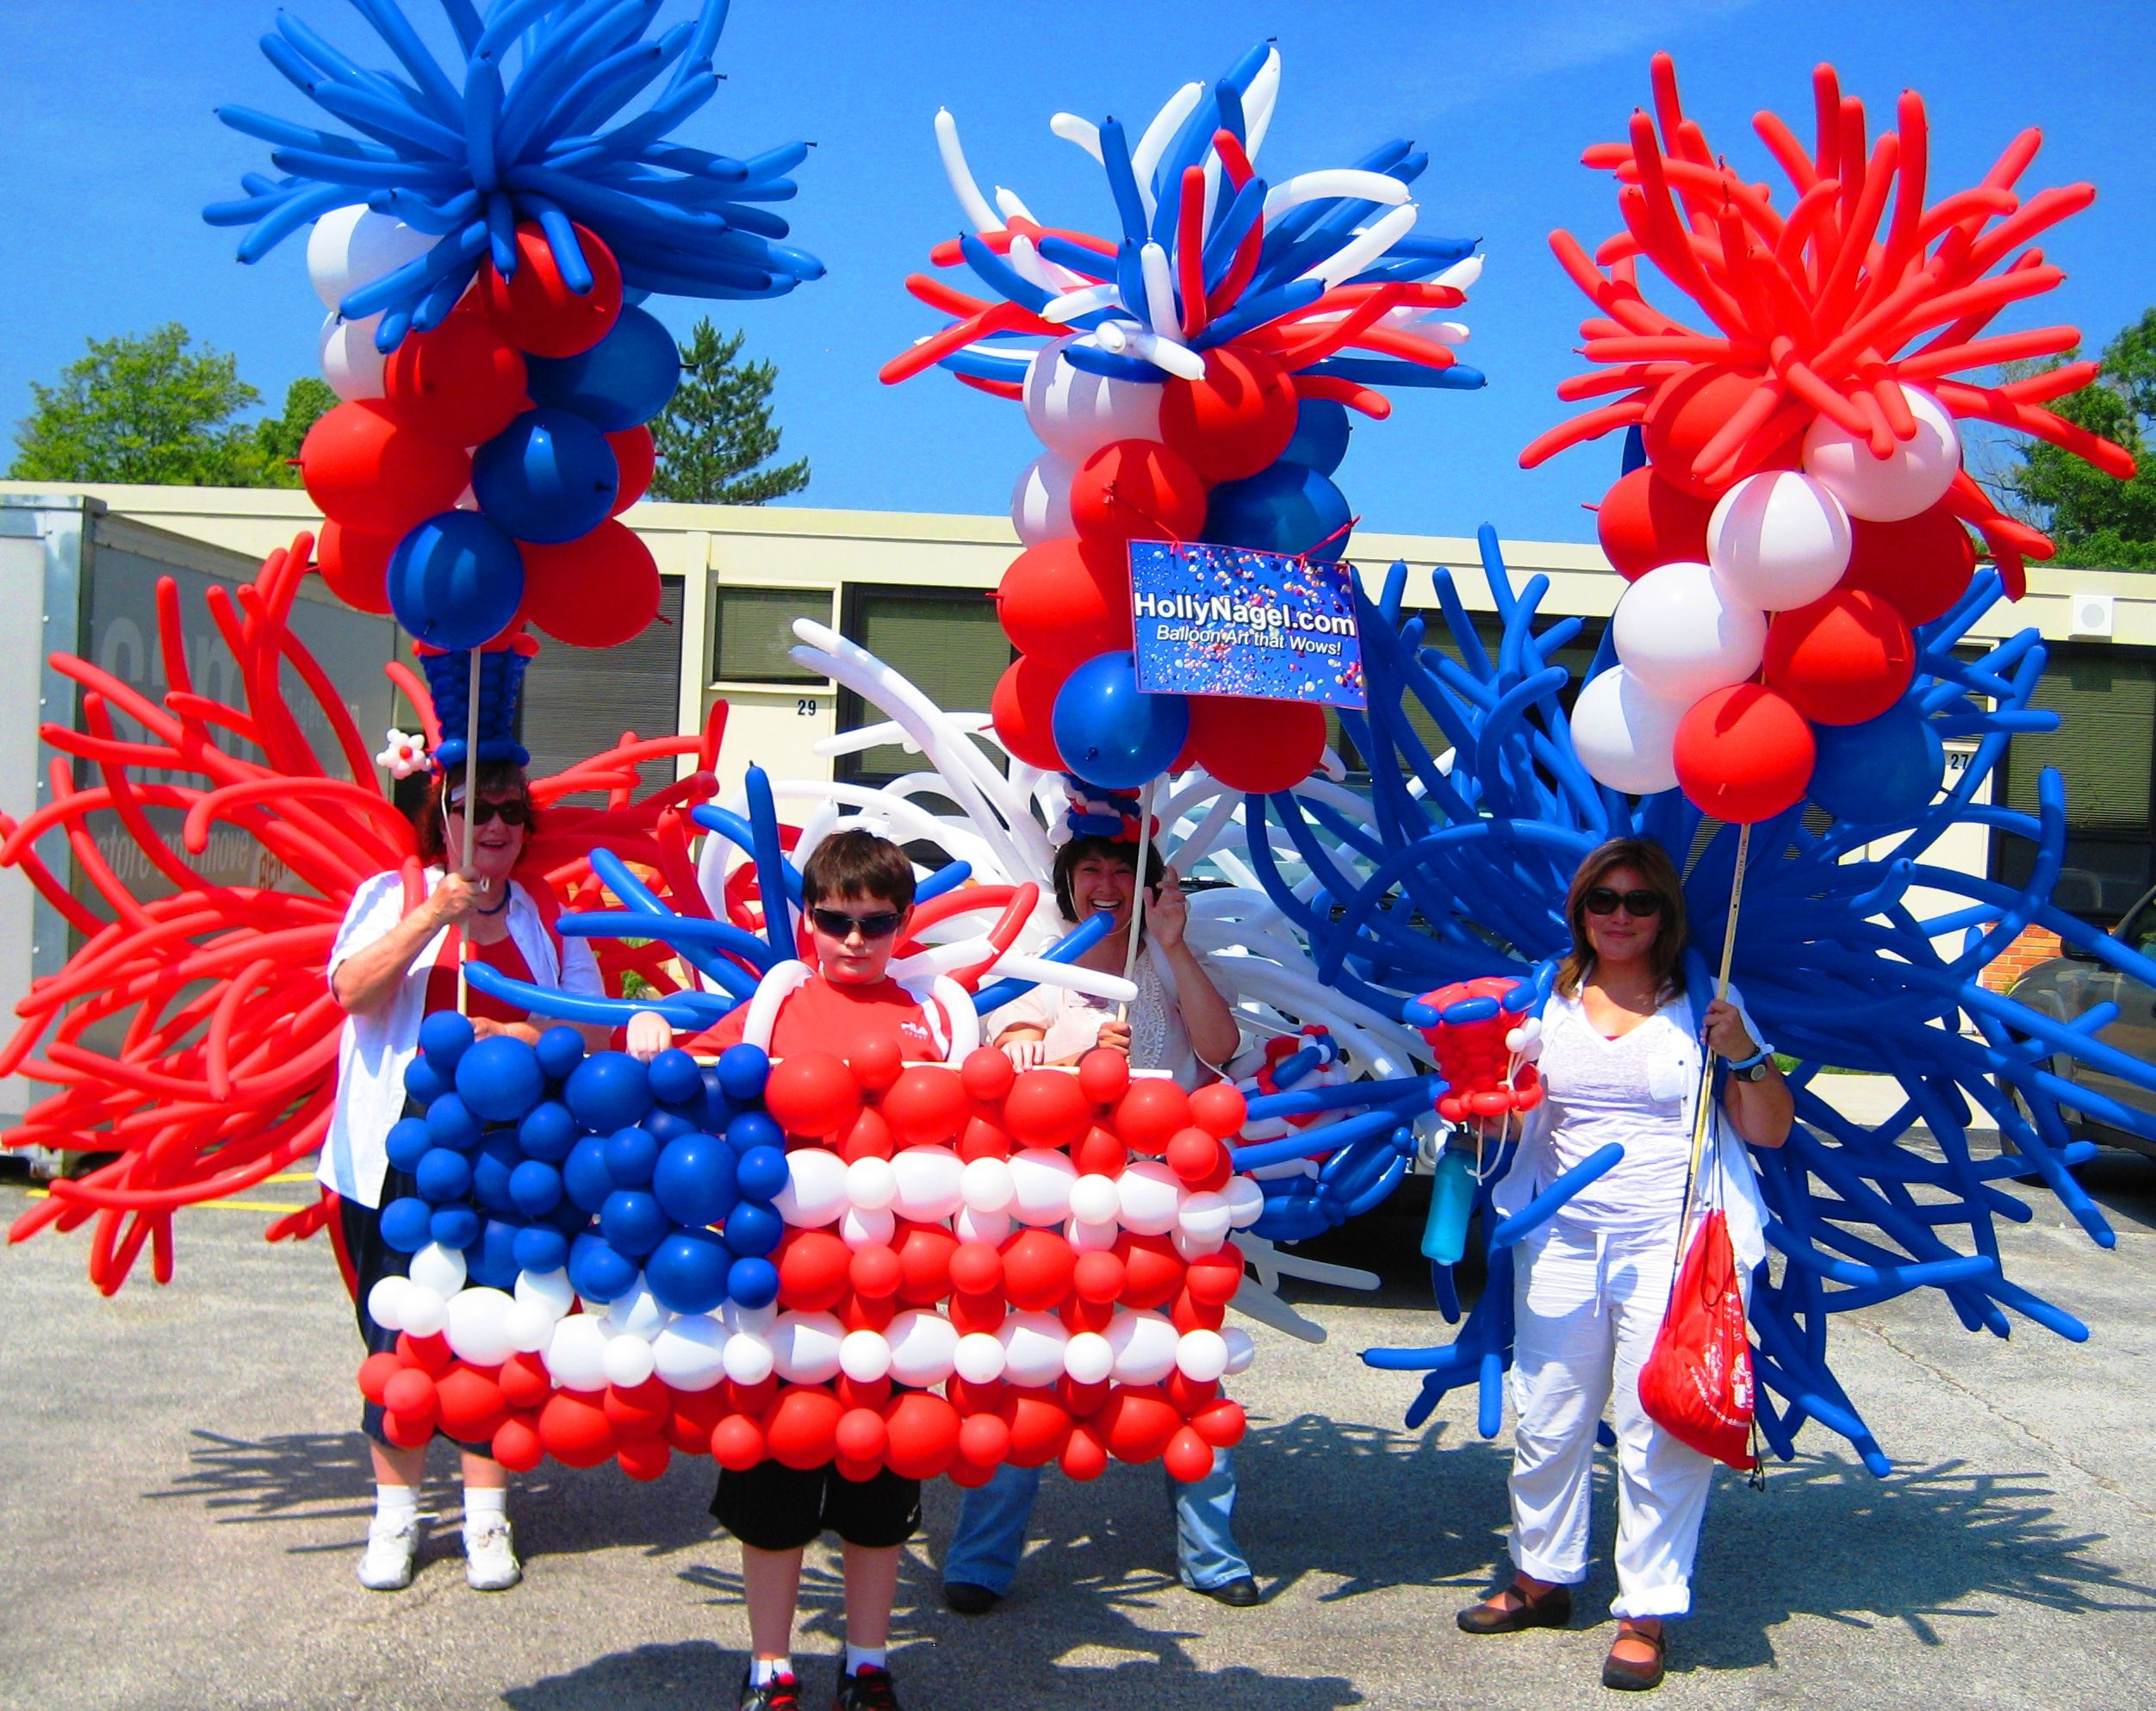 48 best images about balloon 4th of July decor on Pinterest